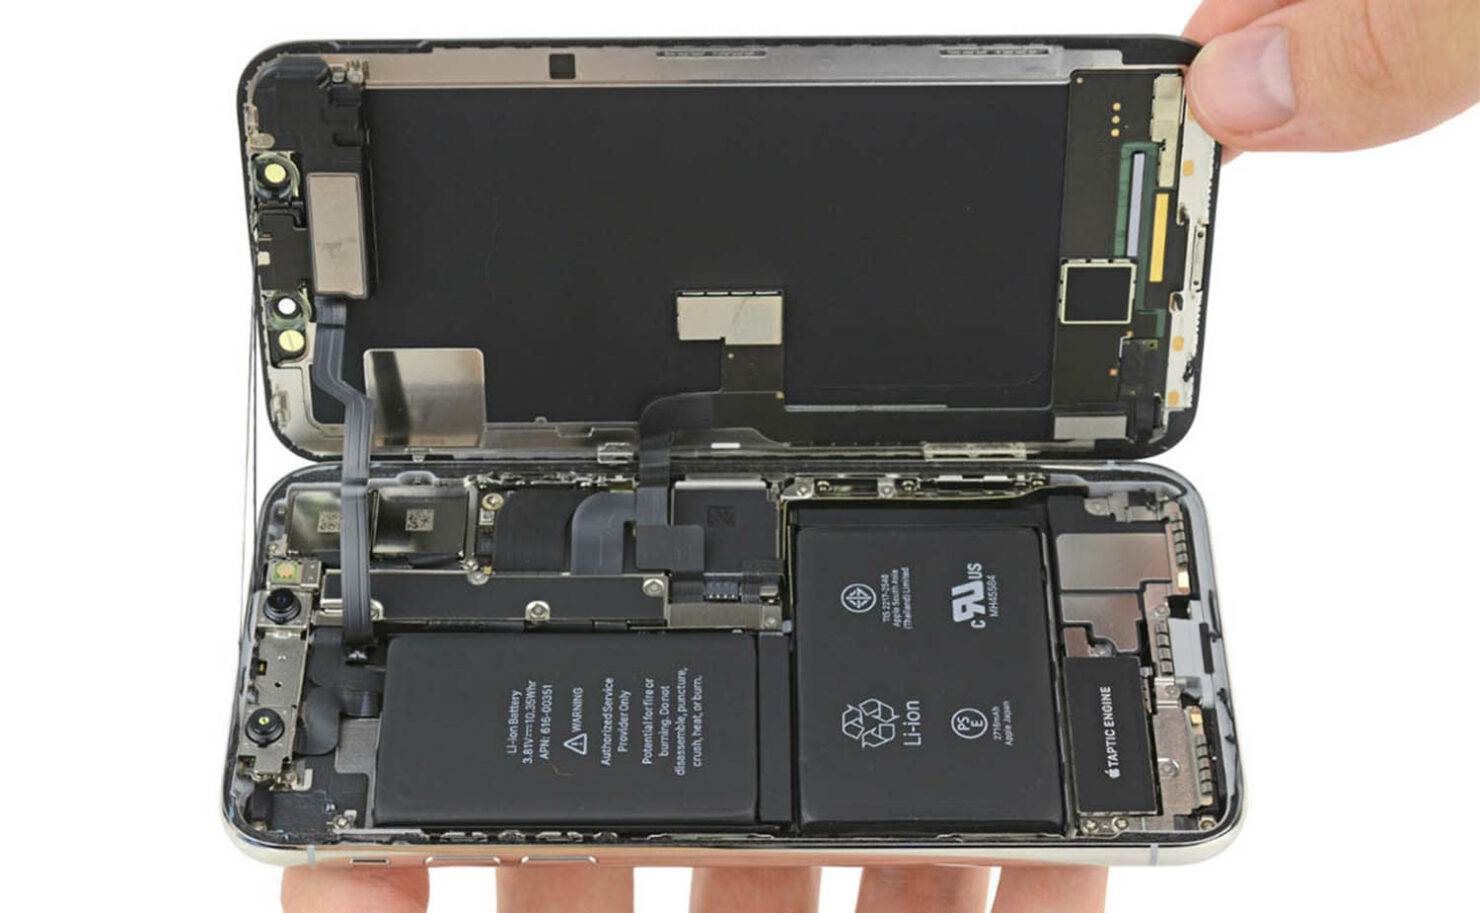 New details from Apple's Independent Repair Provider Program state that shops can service iPhones